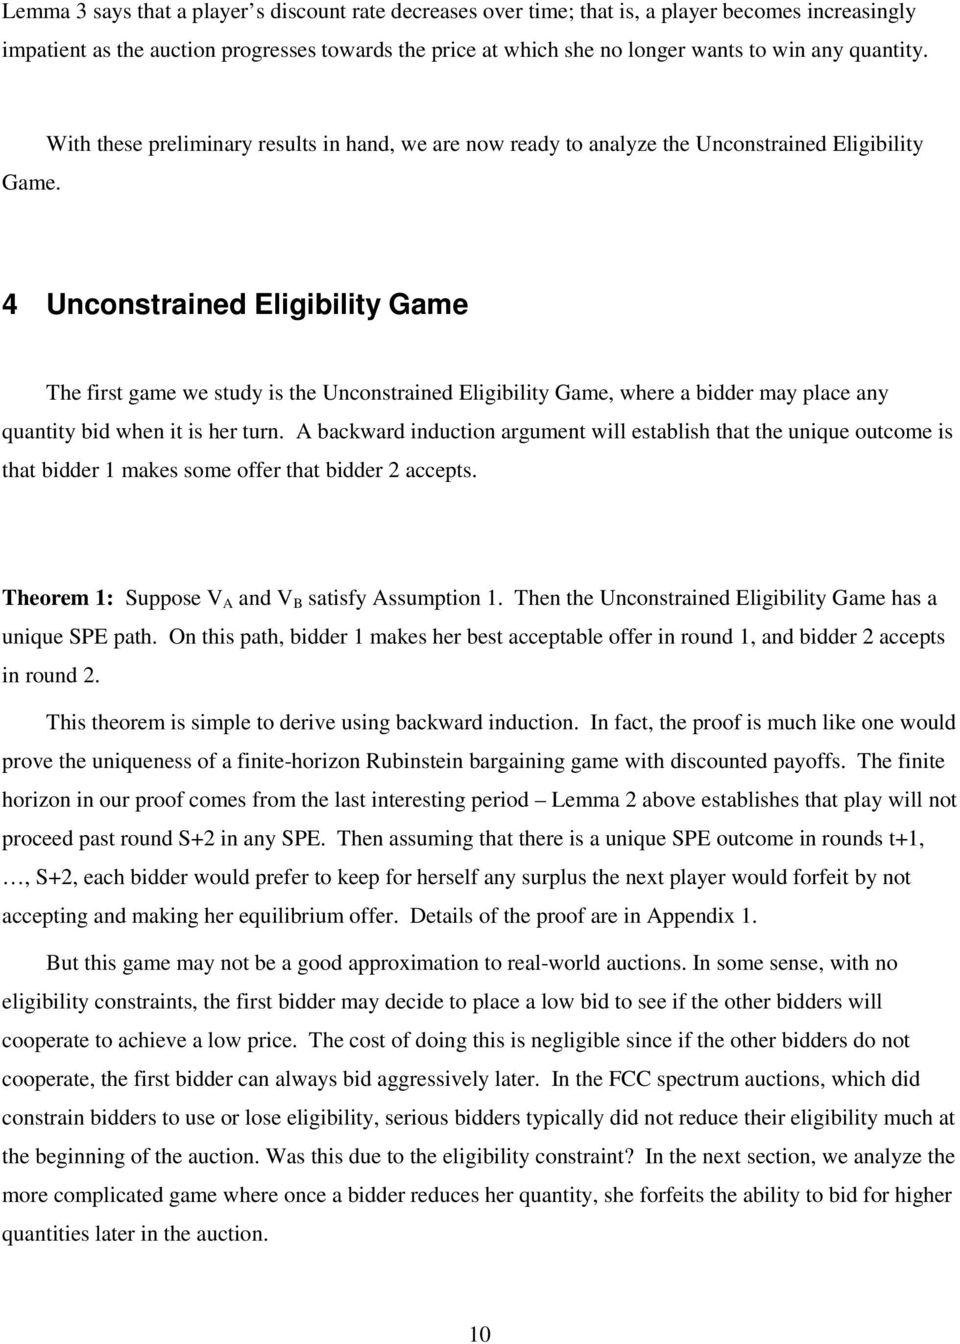 4 Unconstrained Eligibility Game The first game we study is the Unconstrained Eligibility Game, where a bidder may place any quantity bid when it is her turn.